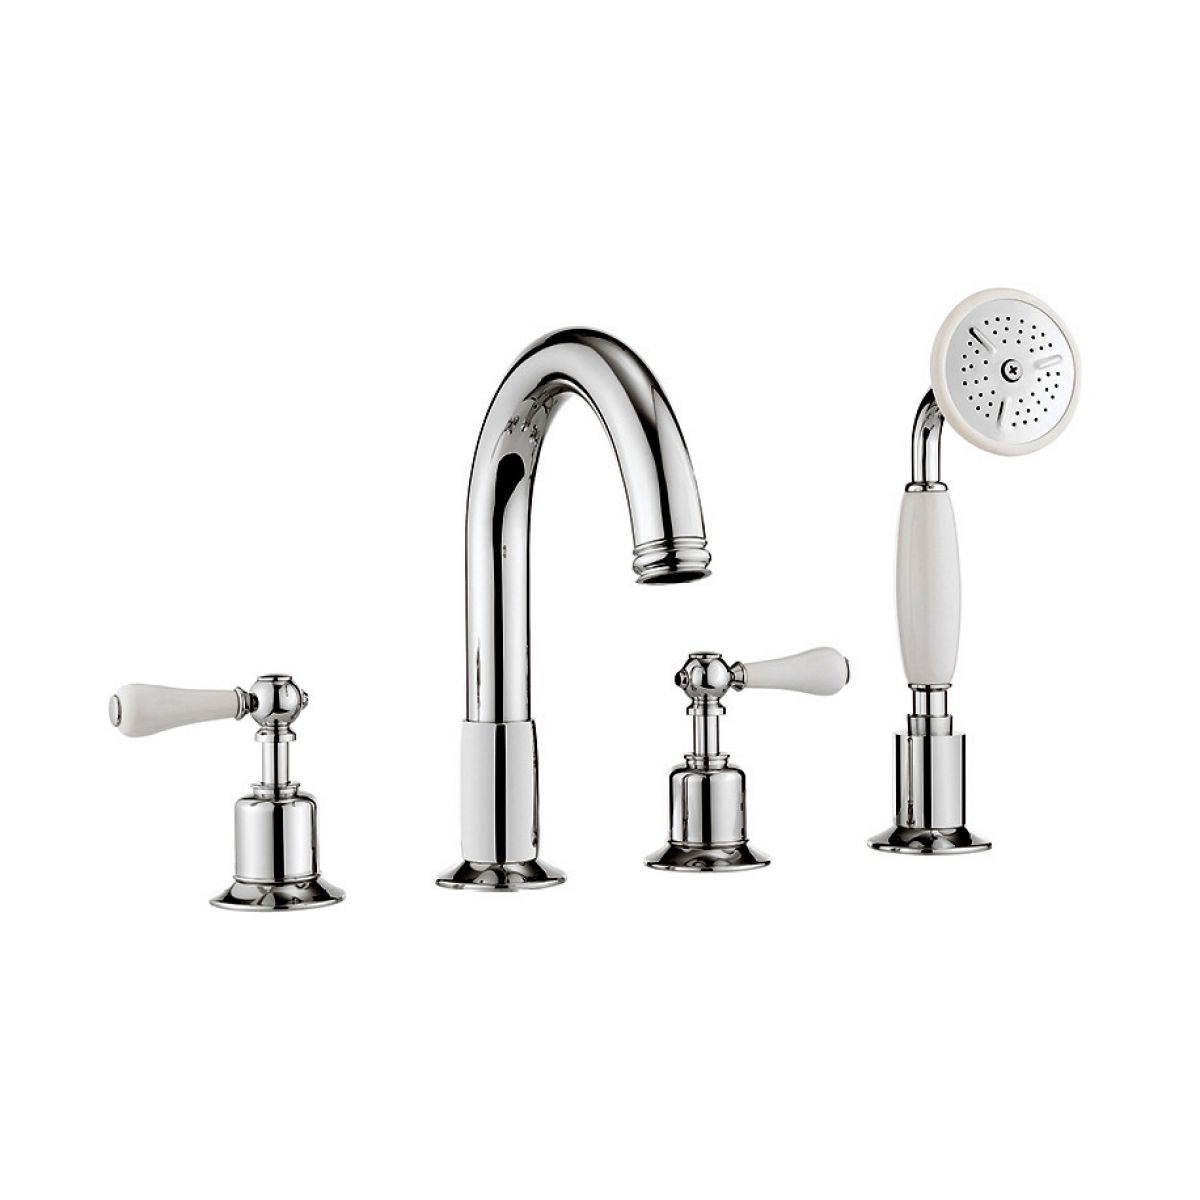 Crosswater Belgravia 4 Hole Bath Mixer Tap With Shower Set